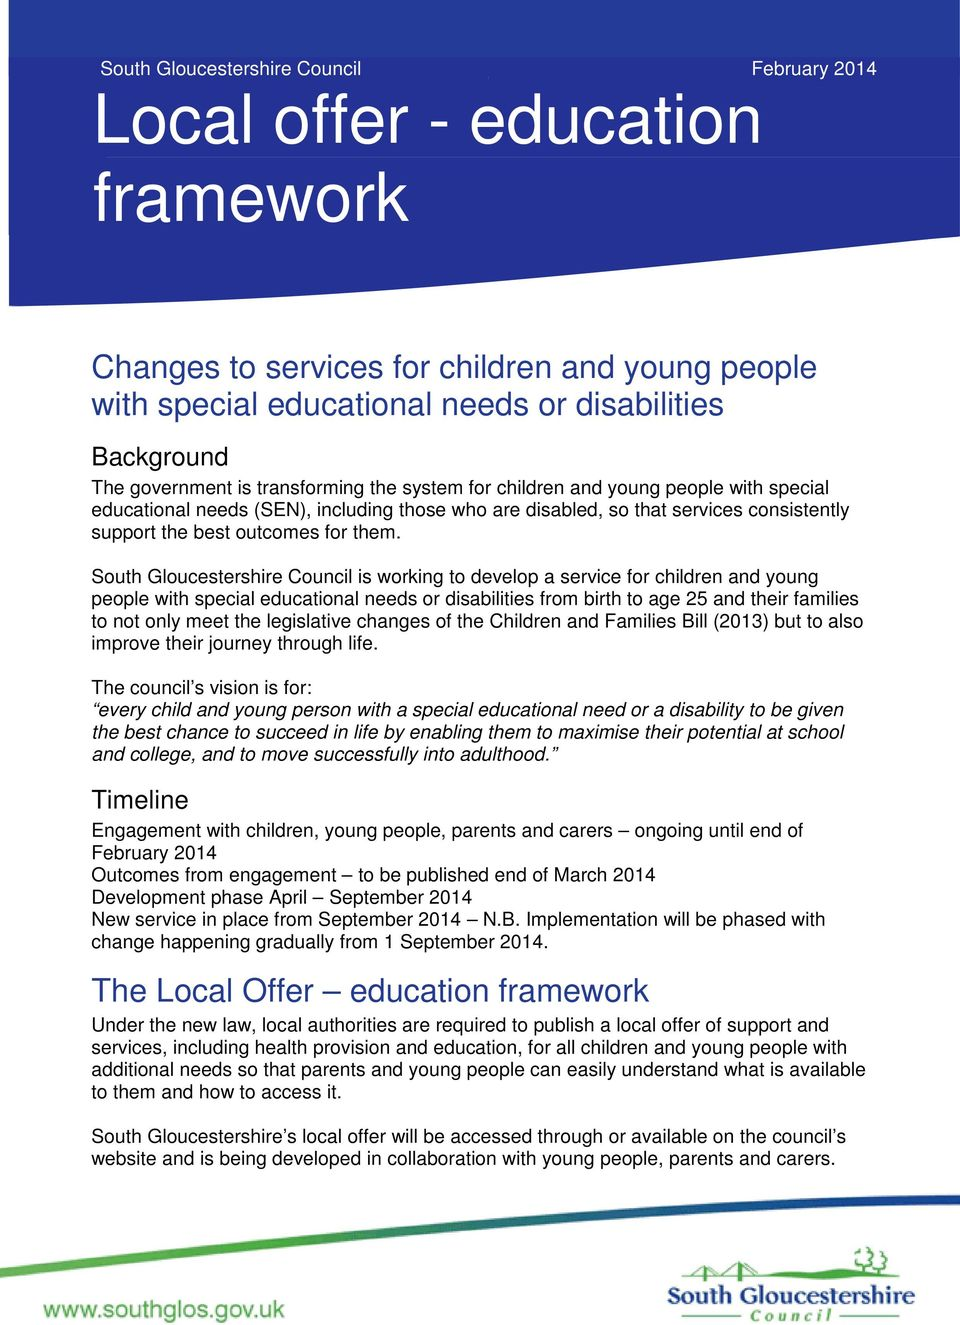 them. South Gloucestershire Council is working to develop a service for children and young people with special educational needs or disabilities from birth to age 25 and their families to not only